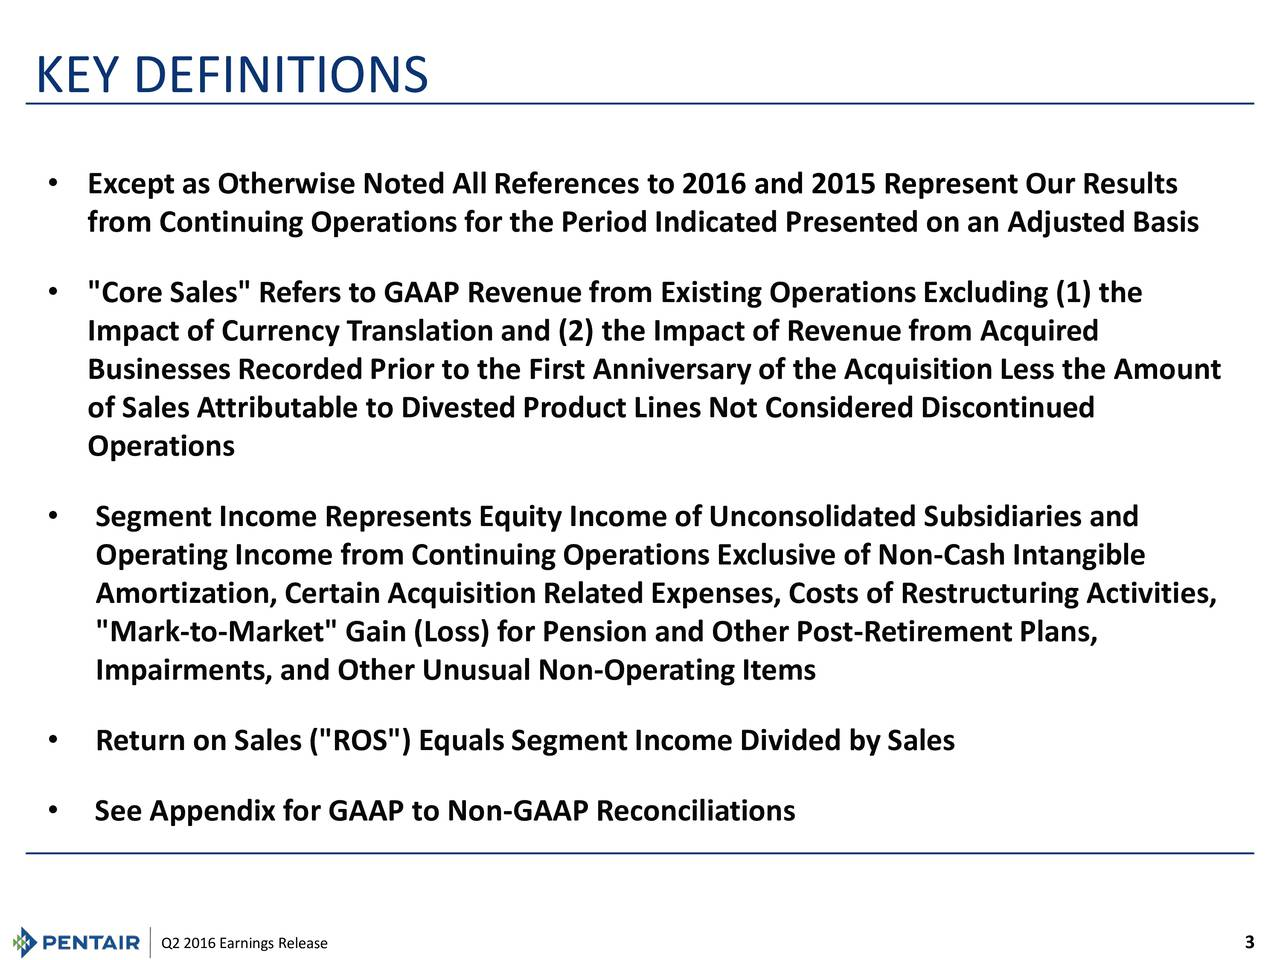 """Except as Otherwise Noted All References to 2016 and 2015 Represent Our Results from Continuing Operations for the Period Indicated Presented on an Adjusted Basis """"Core Sales"""" Refers to GAAP Revenue from Existing Operations Excluding (1) the Impact of Currency Translation and (2) the Impact of Revenue from Acquired Businesses Recorded Prior to the First Anniversary of the Acquisition Less the Amount of Sales Attributable to Divested Product Lines Not Considered Discontinued Operations Segment Income Represents Equity Income of Unconsolidated Subsidiaries and Operating Income from Continuing Operations Exclusive of Non-Cash Intangible Amortization, Certain Acquisition Related Expenses, Costs of Restructuring Activities, """"Mark-to-Market"""" Gain (Loss) for Pension and Other Post-Retirement Plans, Impairments, and Other Unusual Non-Operating Items Return on Sales (""""ROS"""") Equals Segment Income Divided by Sales See Appendix for GAAP to Non-GAAP Reconciliations"""